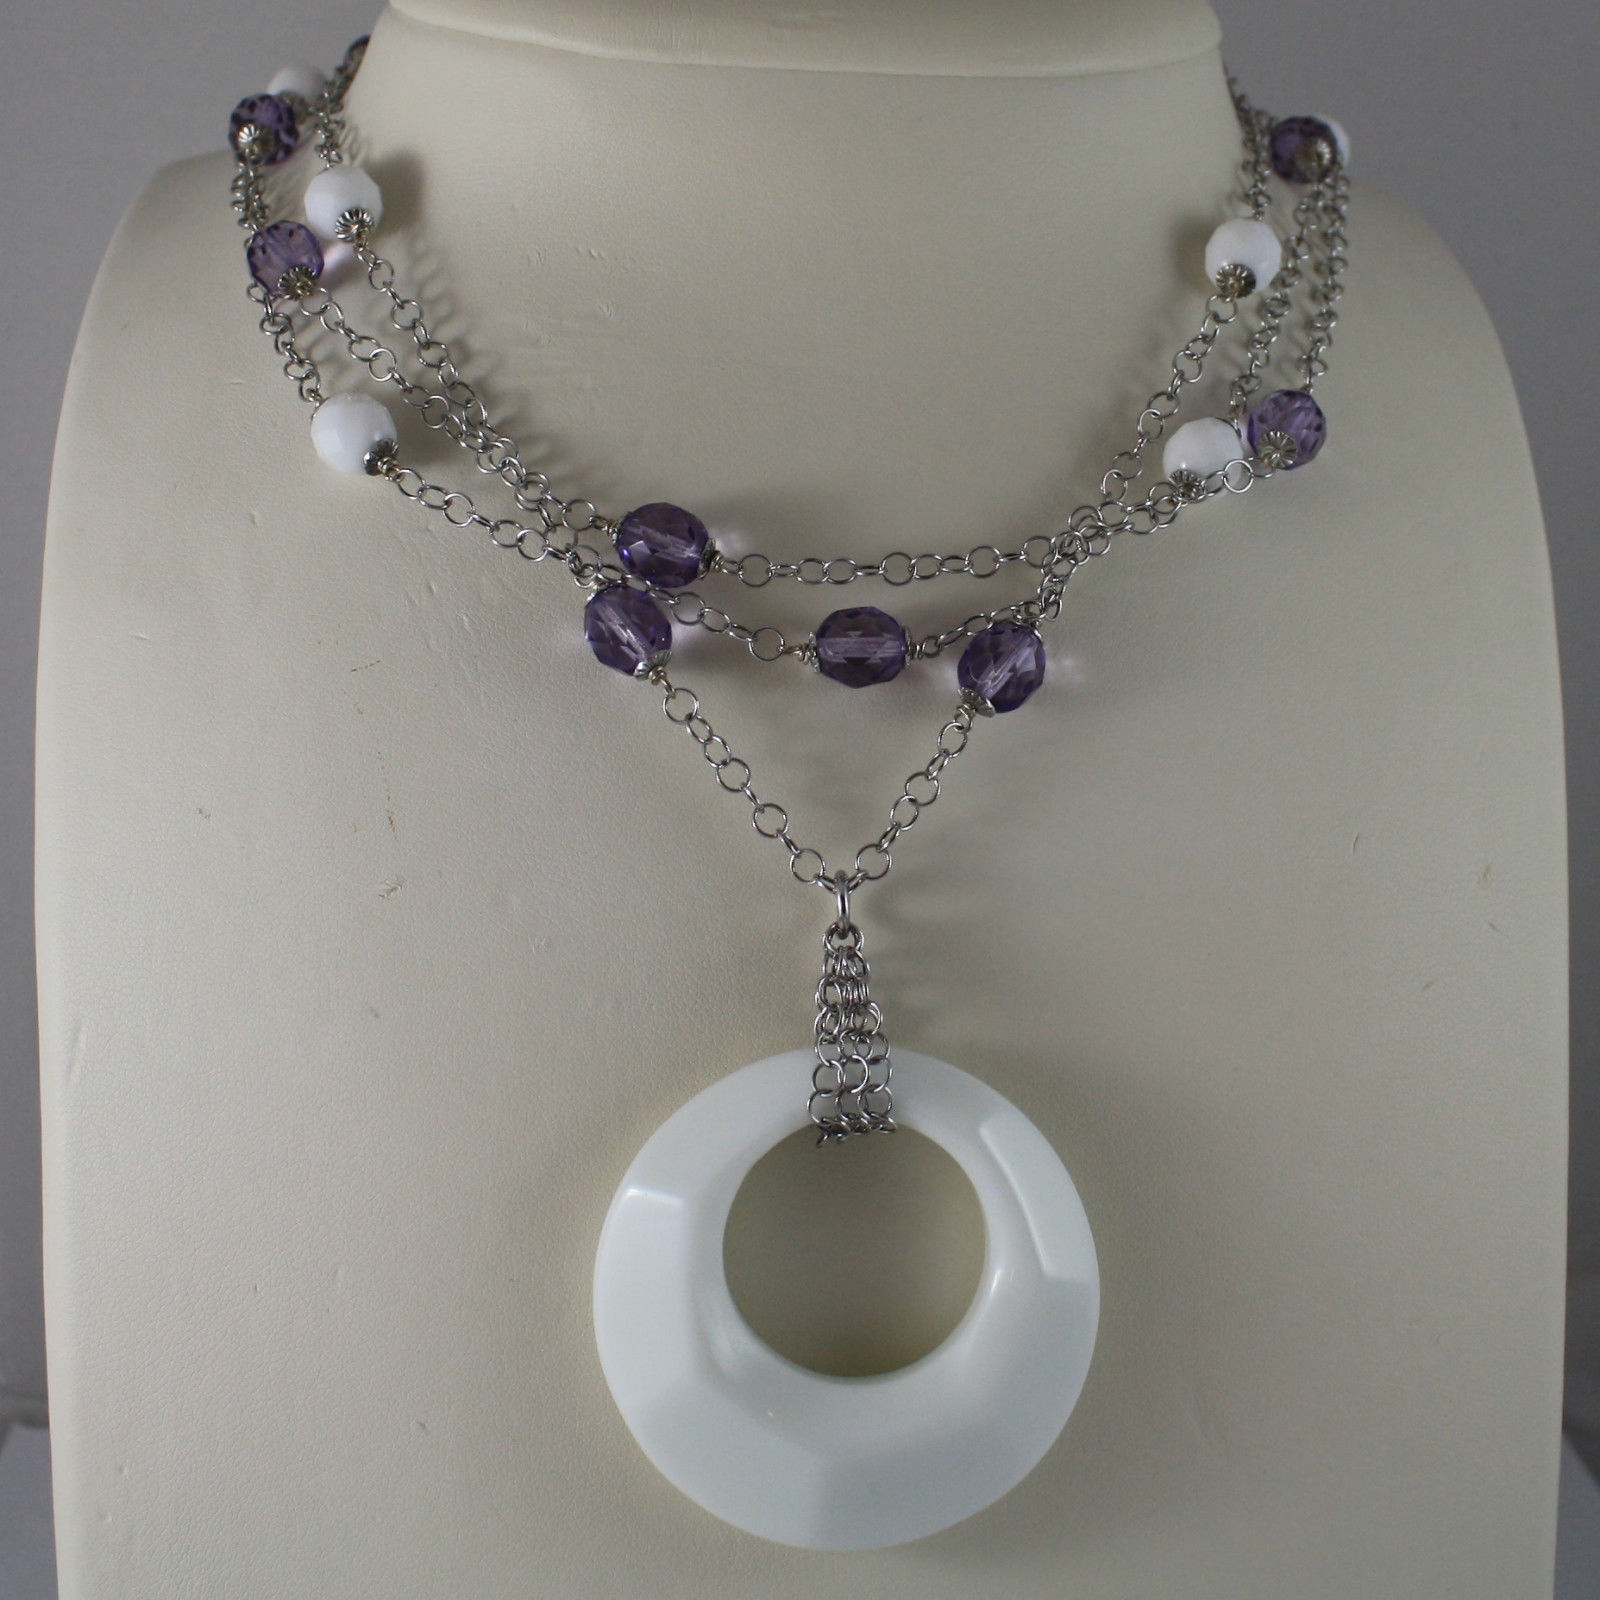 .925 SILVER RHODIUM MULTI STRAND NECKLACE WITH PURPLE CRYSTALS AND WHITE AGATE